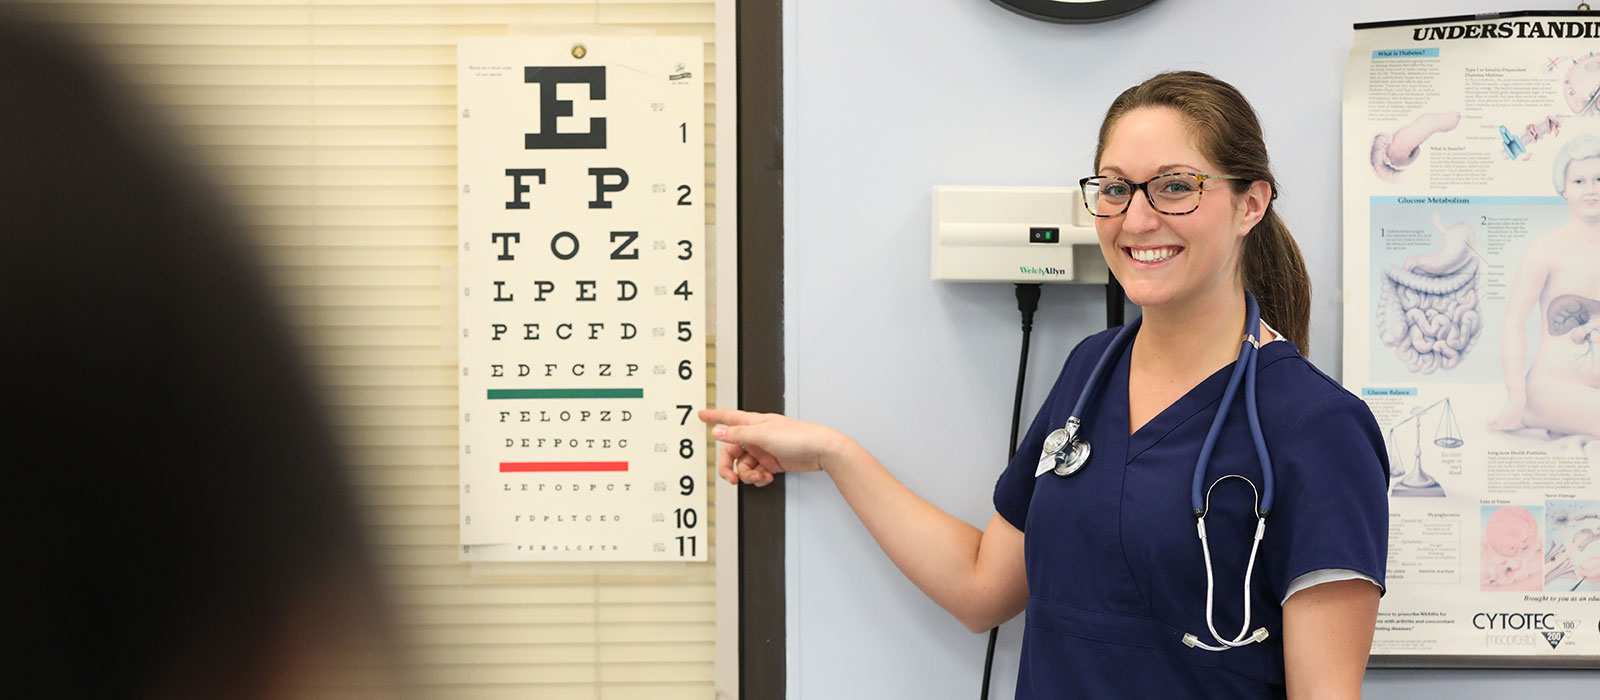 Student pointing at eye chart